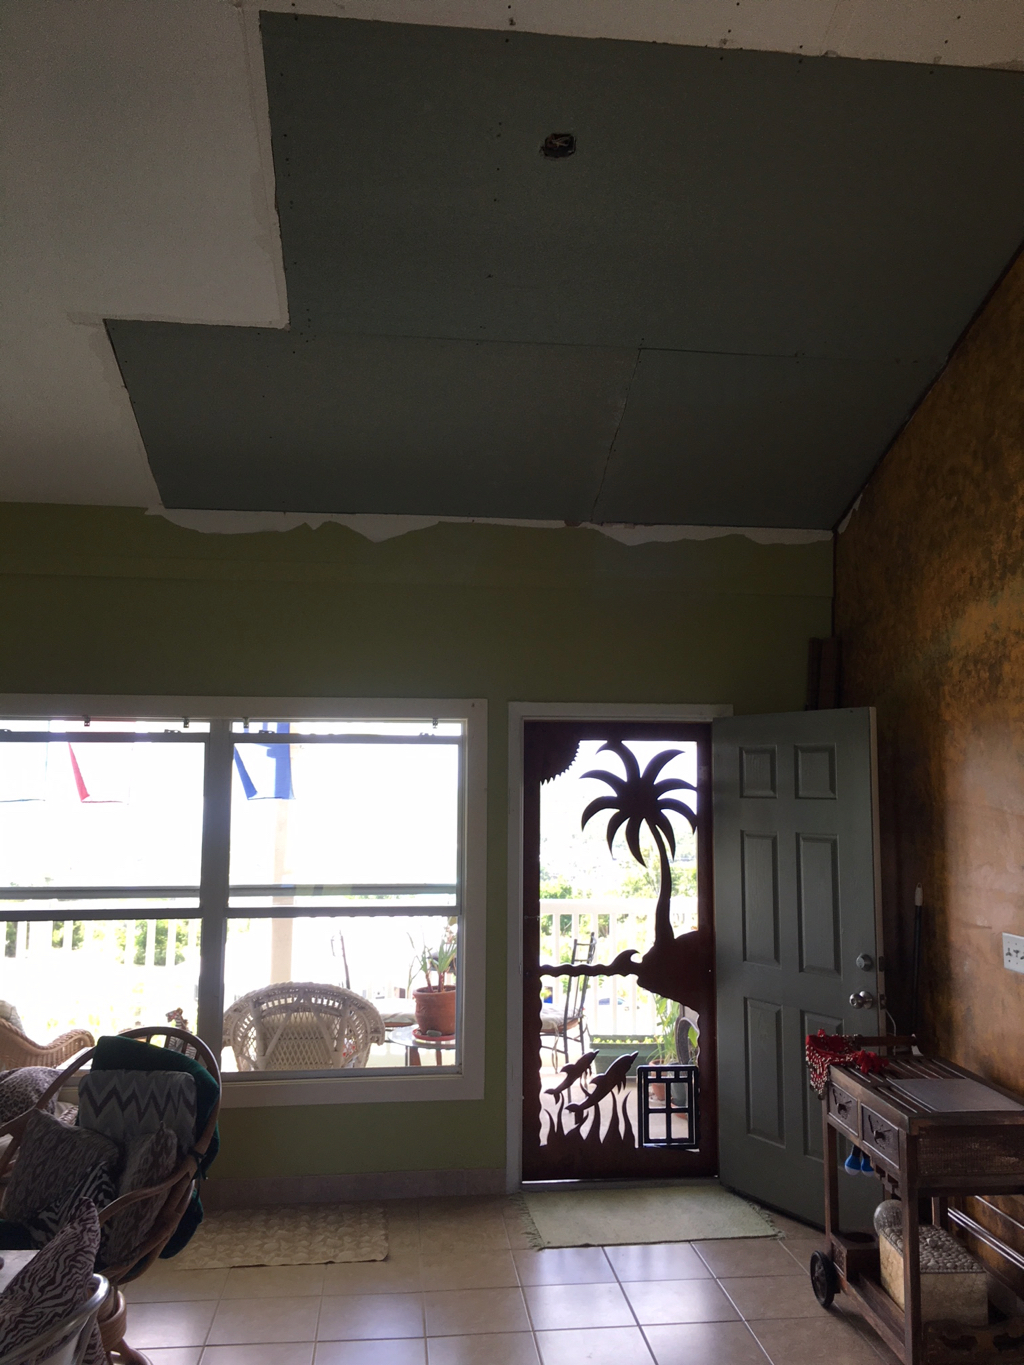 This patch on Keryn Bryan's ceiling was supposed to be temporary, but it's still there a year after the hurricanes hit.